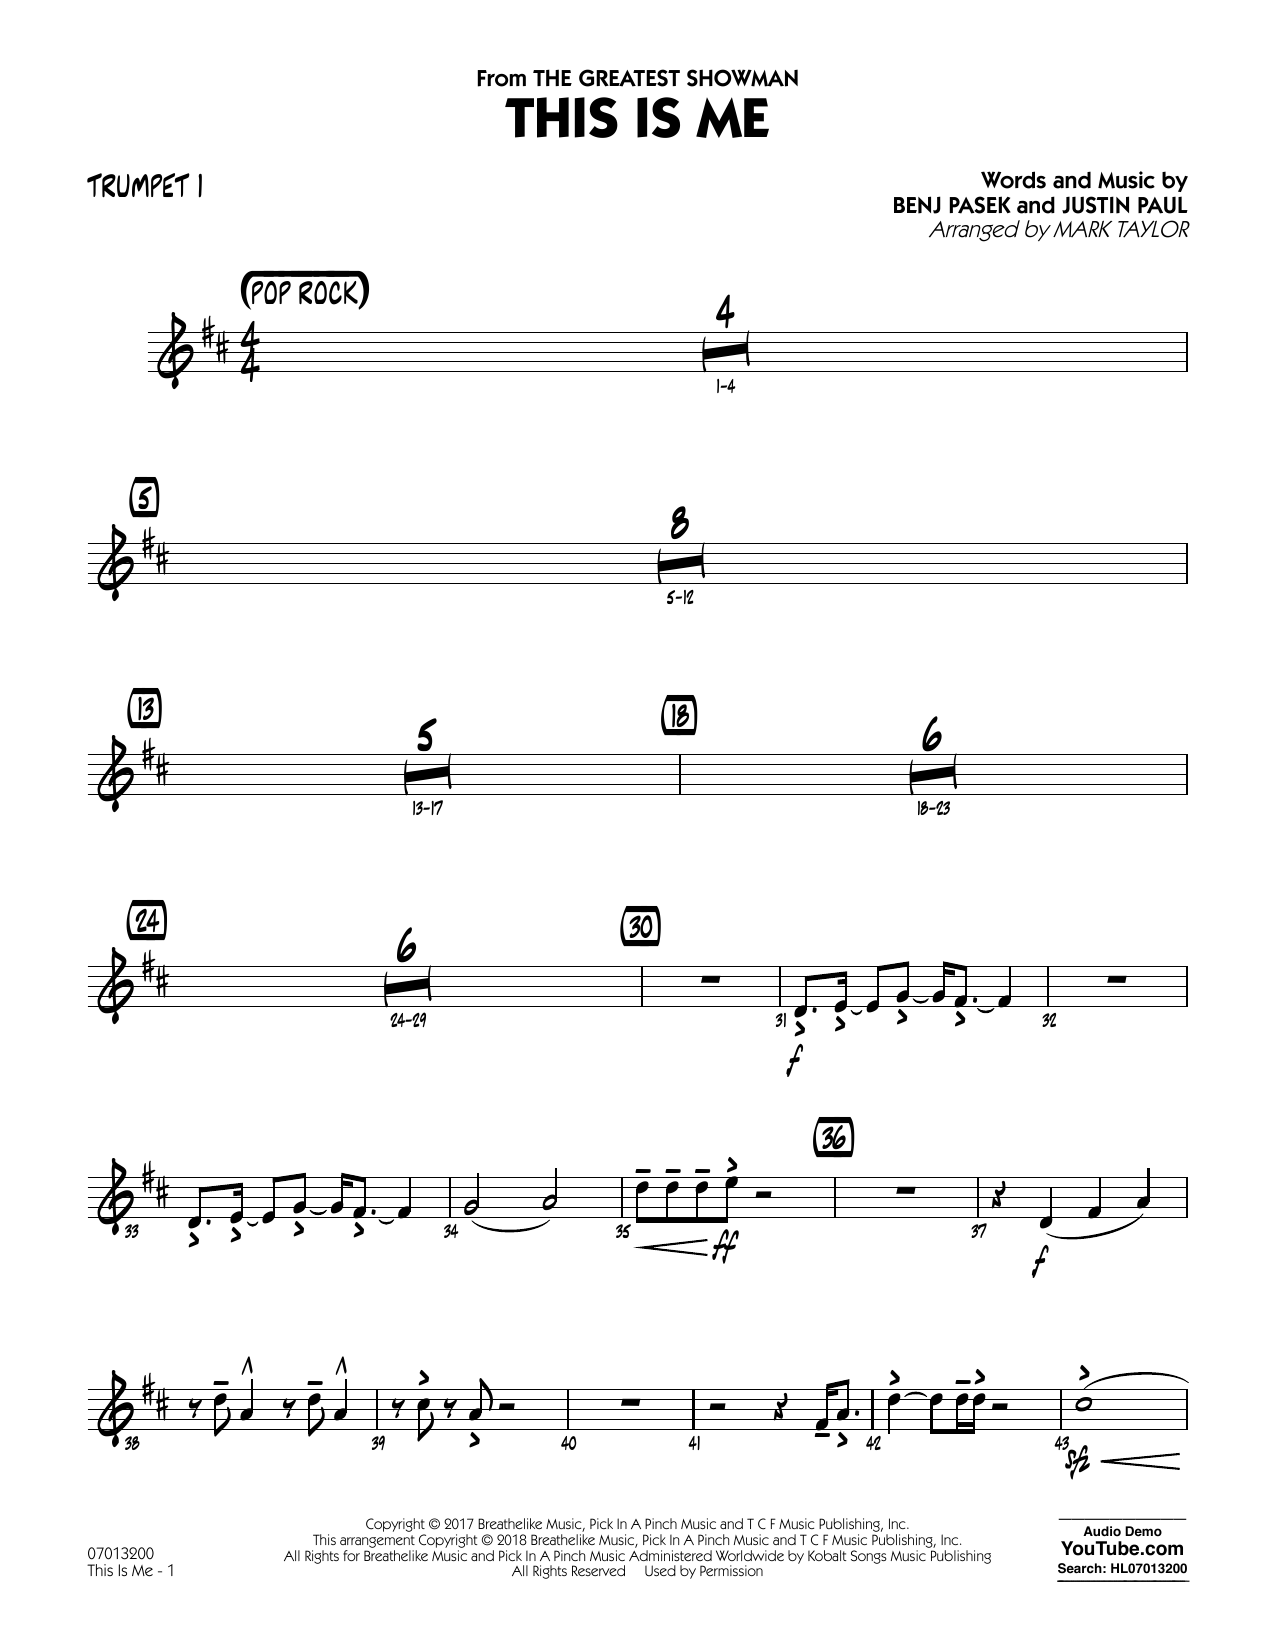 This Is Me (from The Greatest Showman) (arr. Mark Taylor) - Trumpet 1 (Jazz Ensemble)